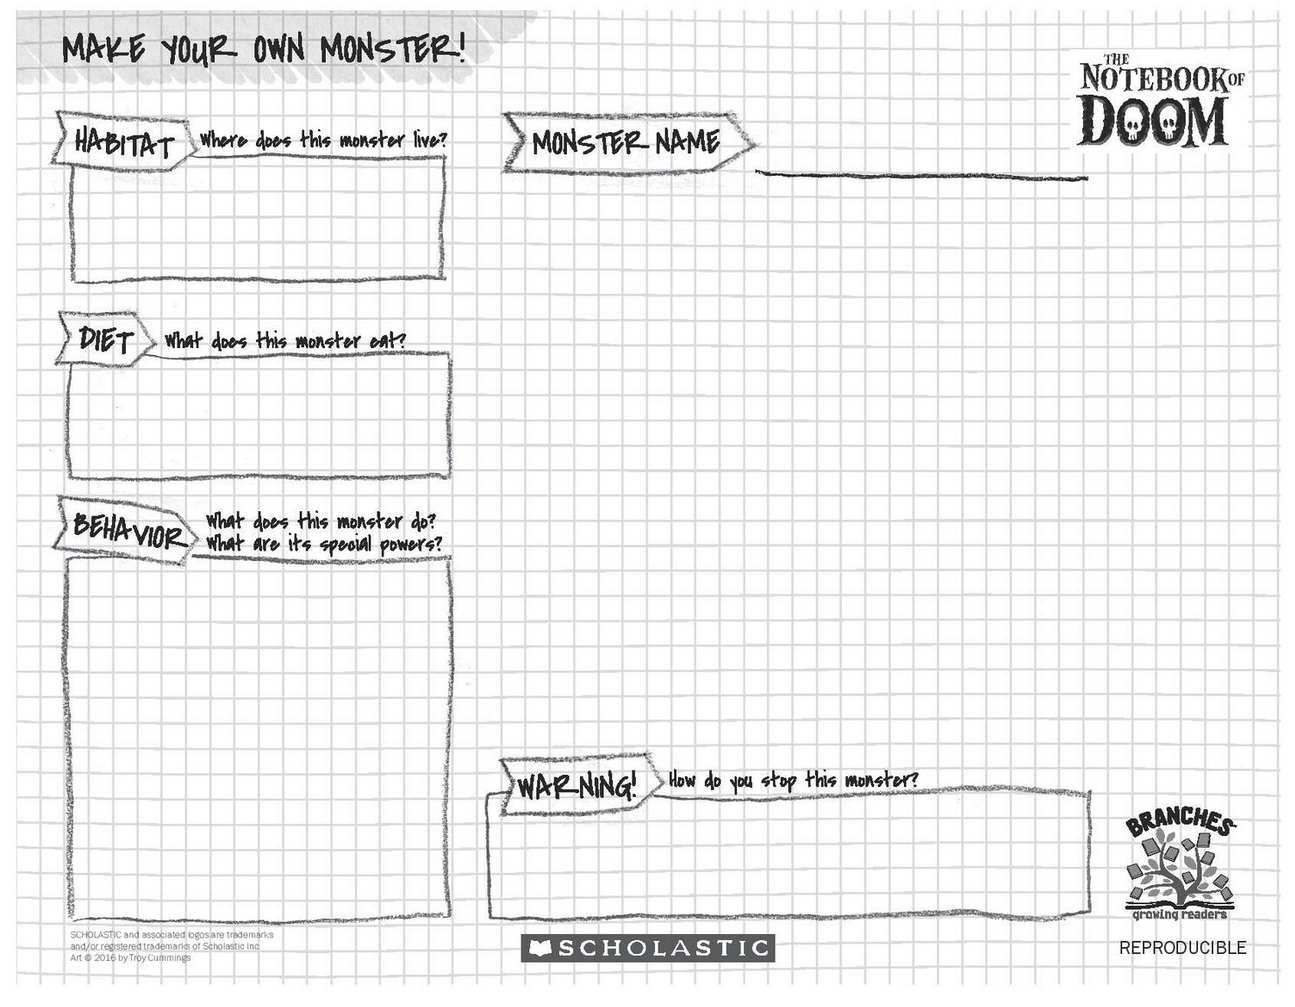 Make Your Own Monster With This The Notebook Of Doom